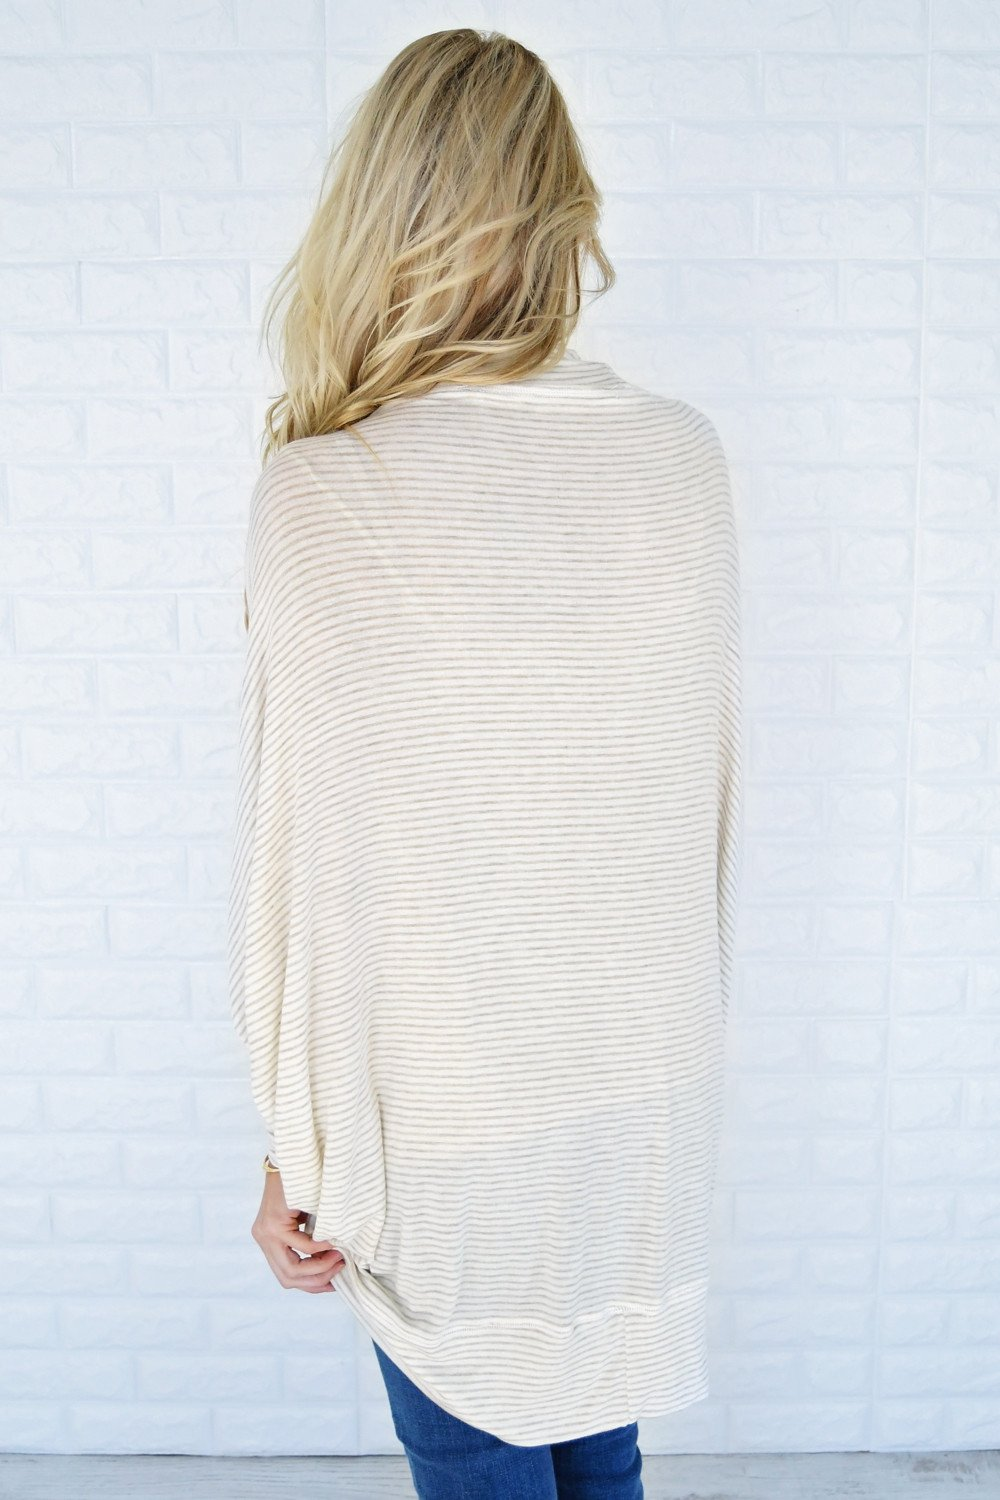 The Softest Summer Cardigan